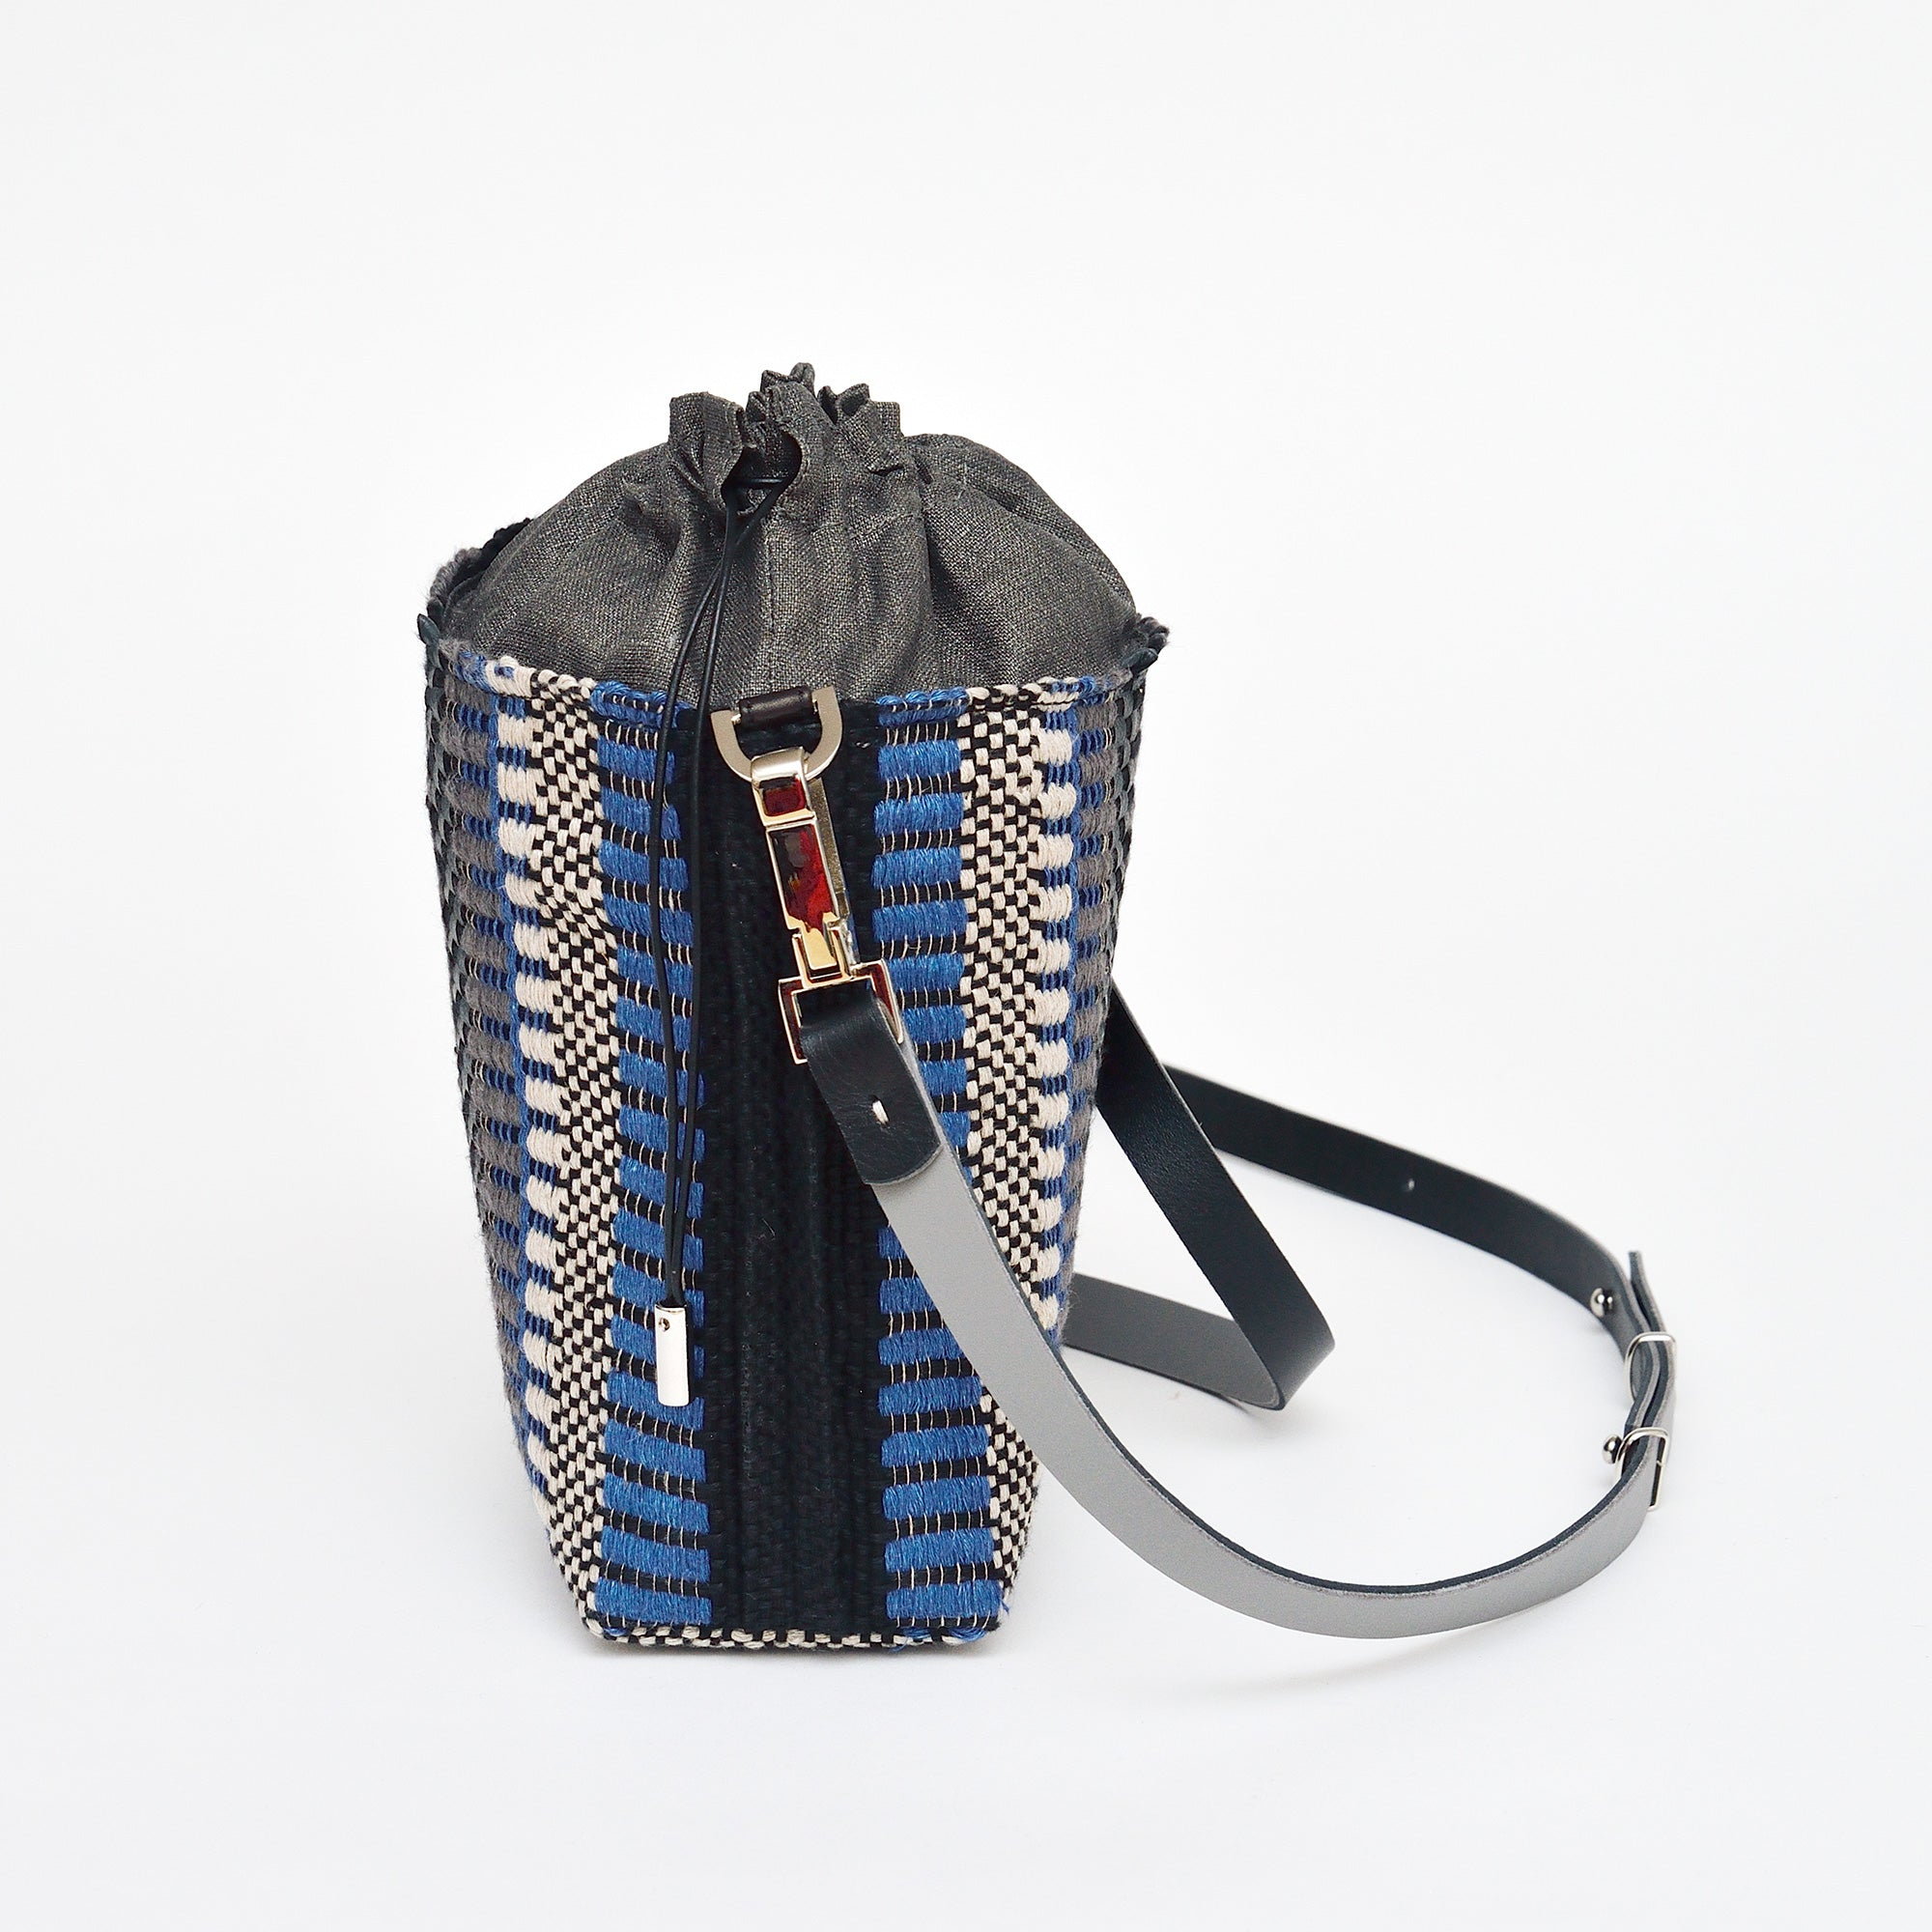 Bag AUSTĖ No. 40 in blue/silver